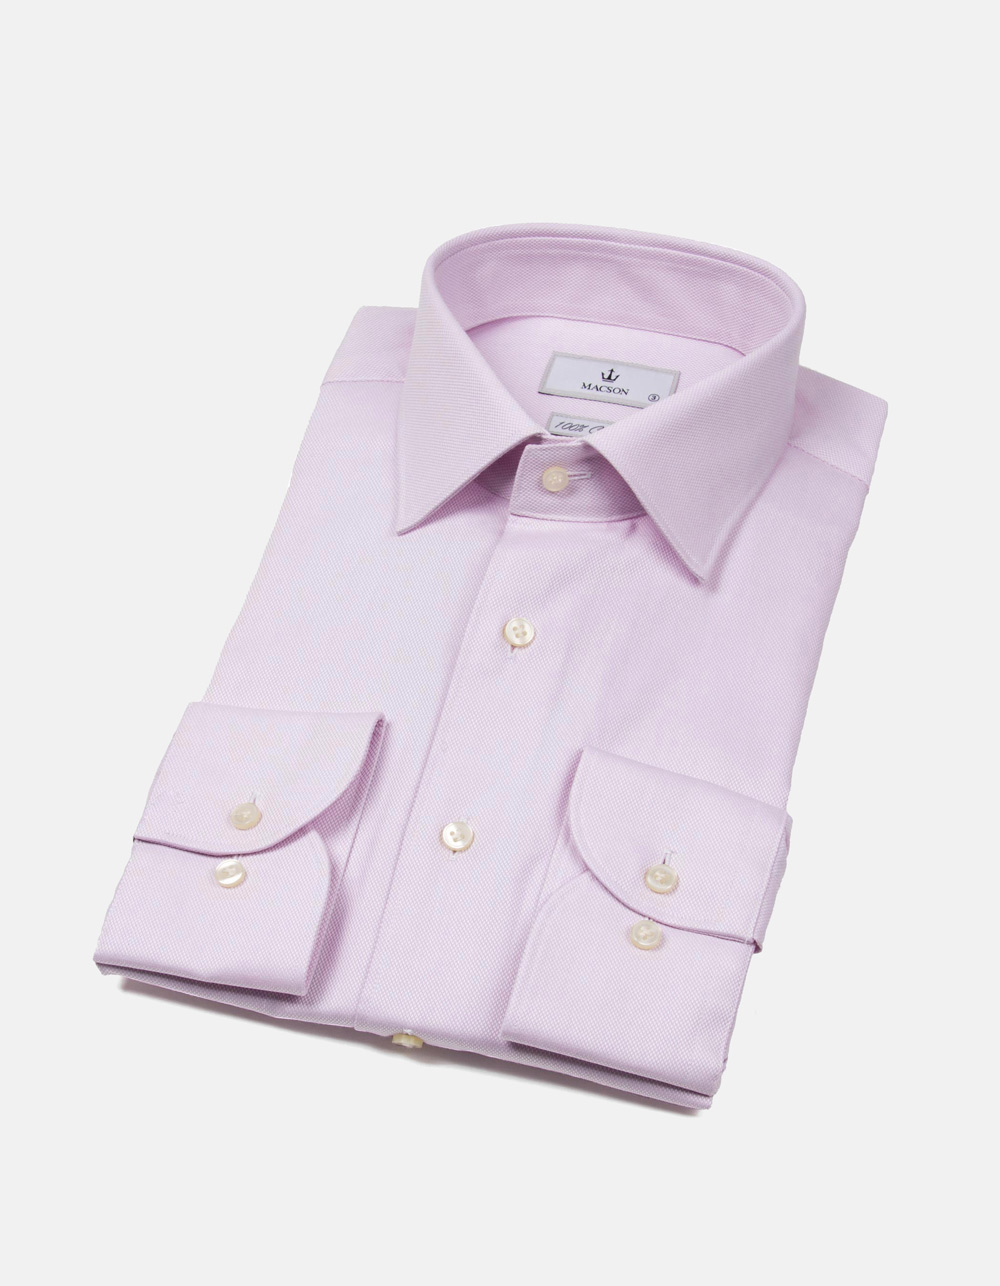 Camisa microestructura rombo rosa